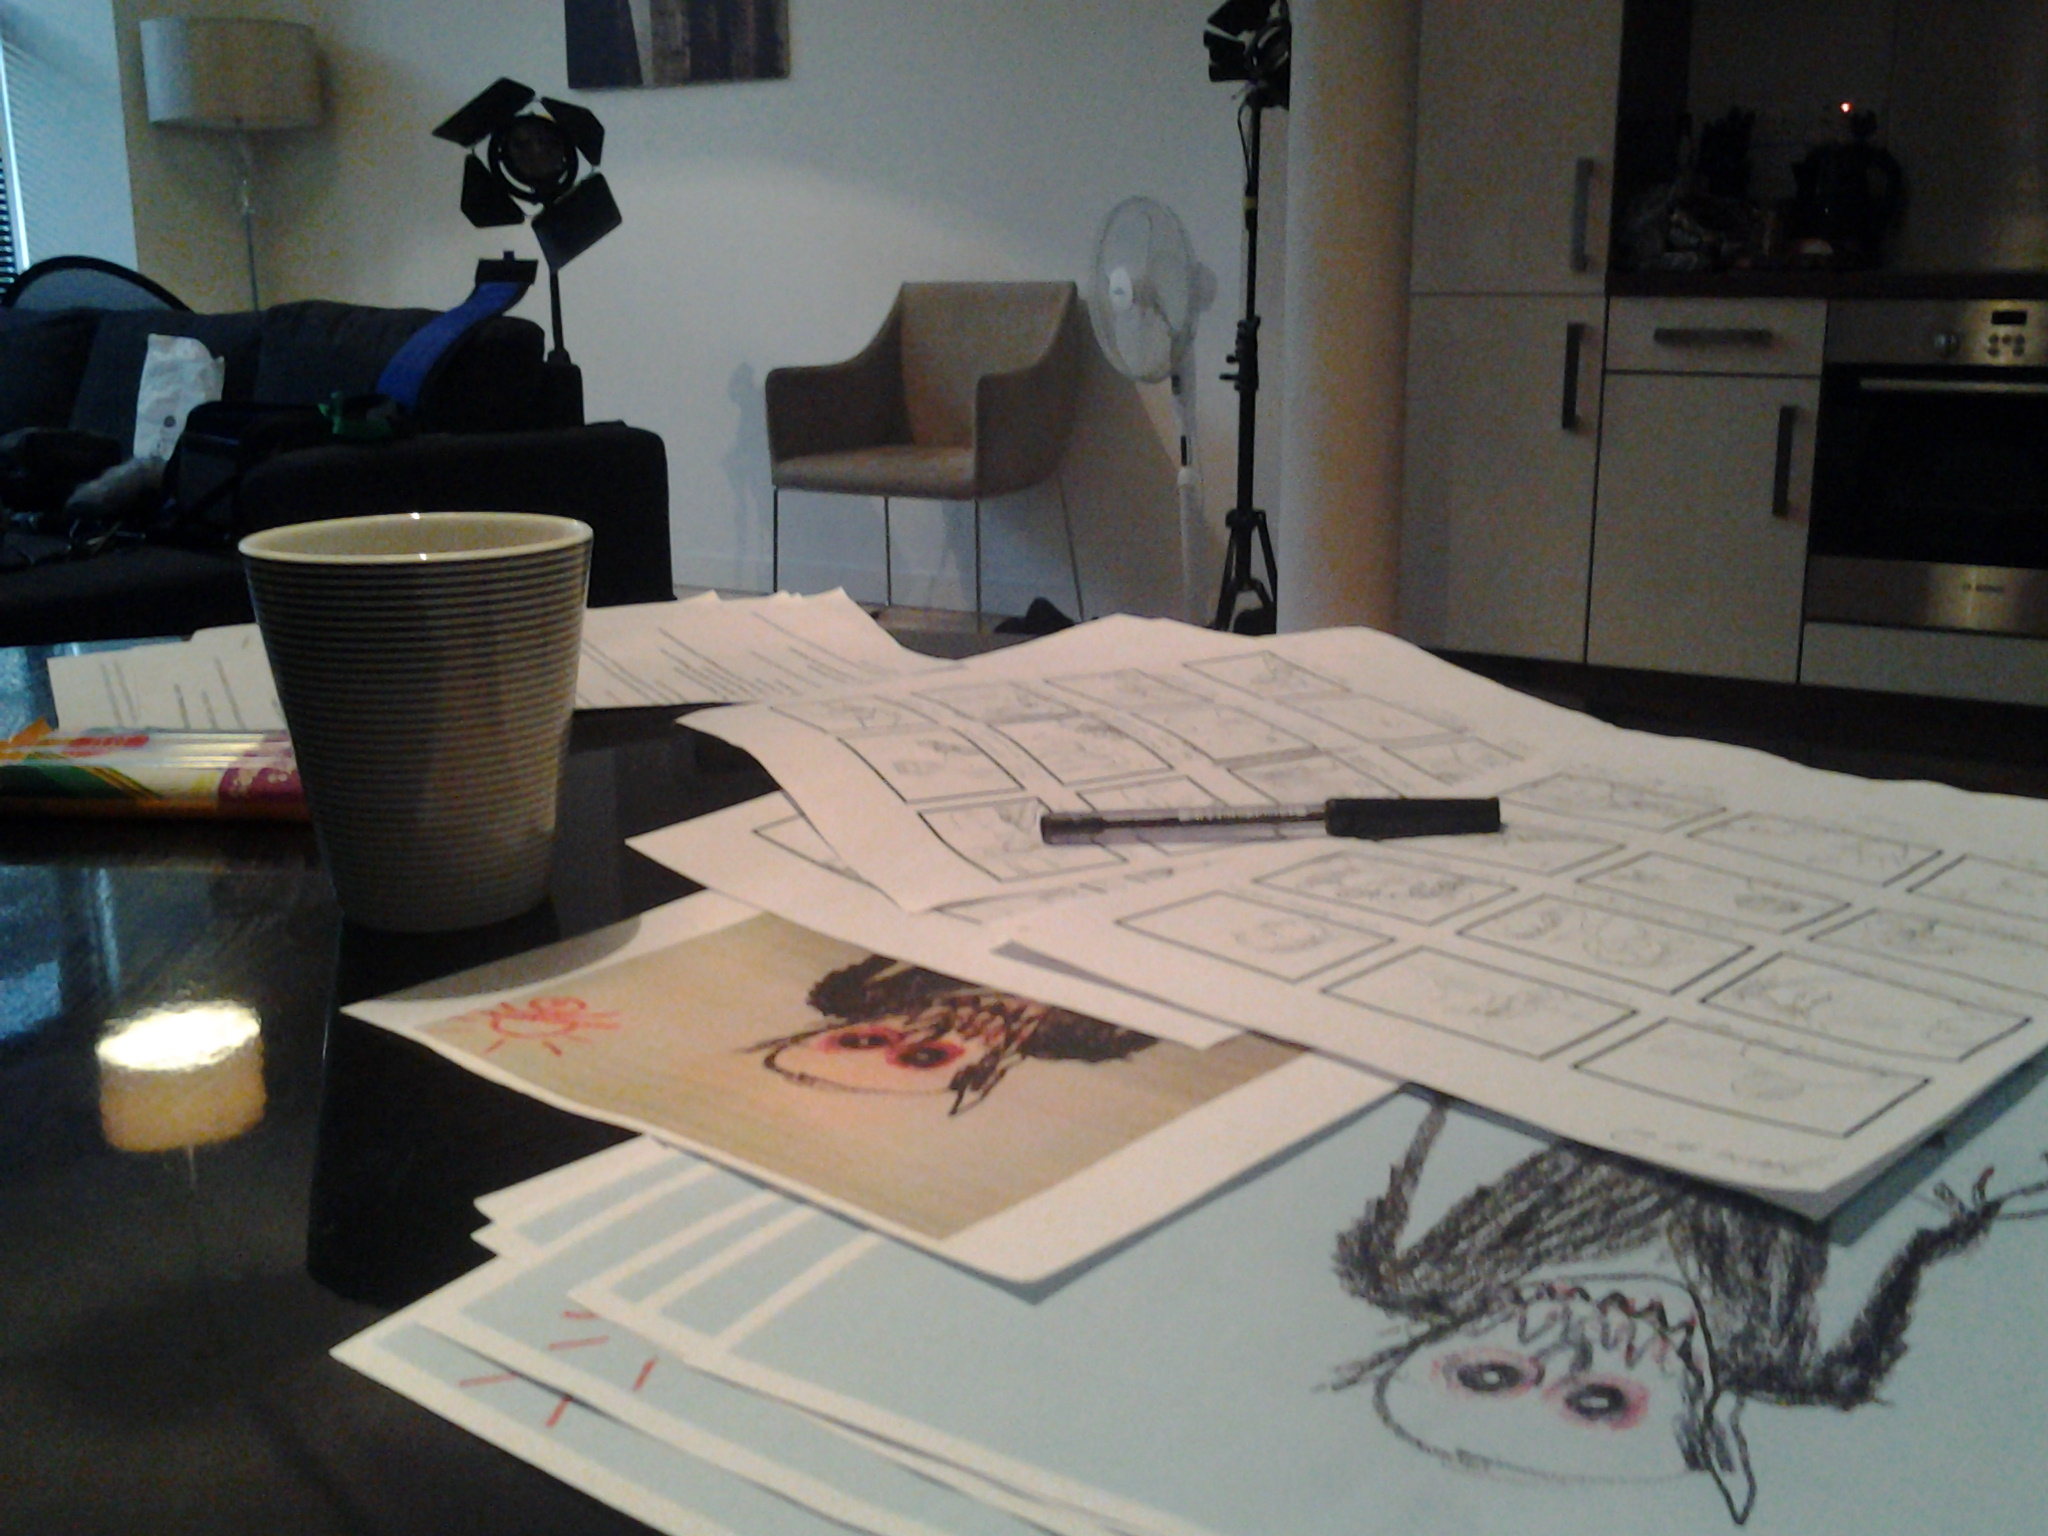 Storyboard, script and drawings on a table.